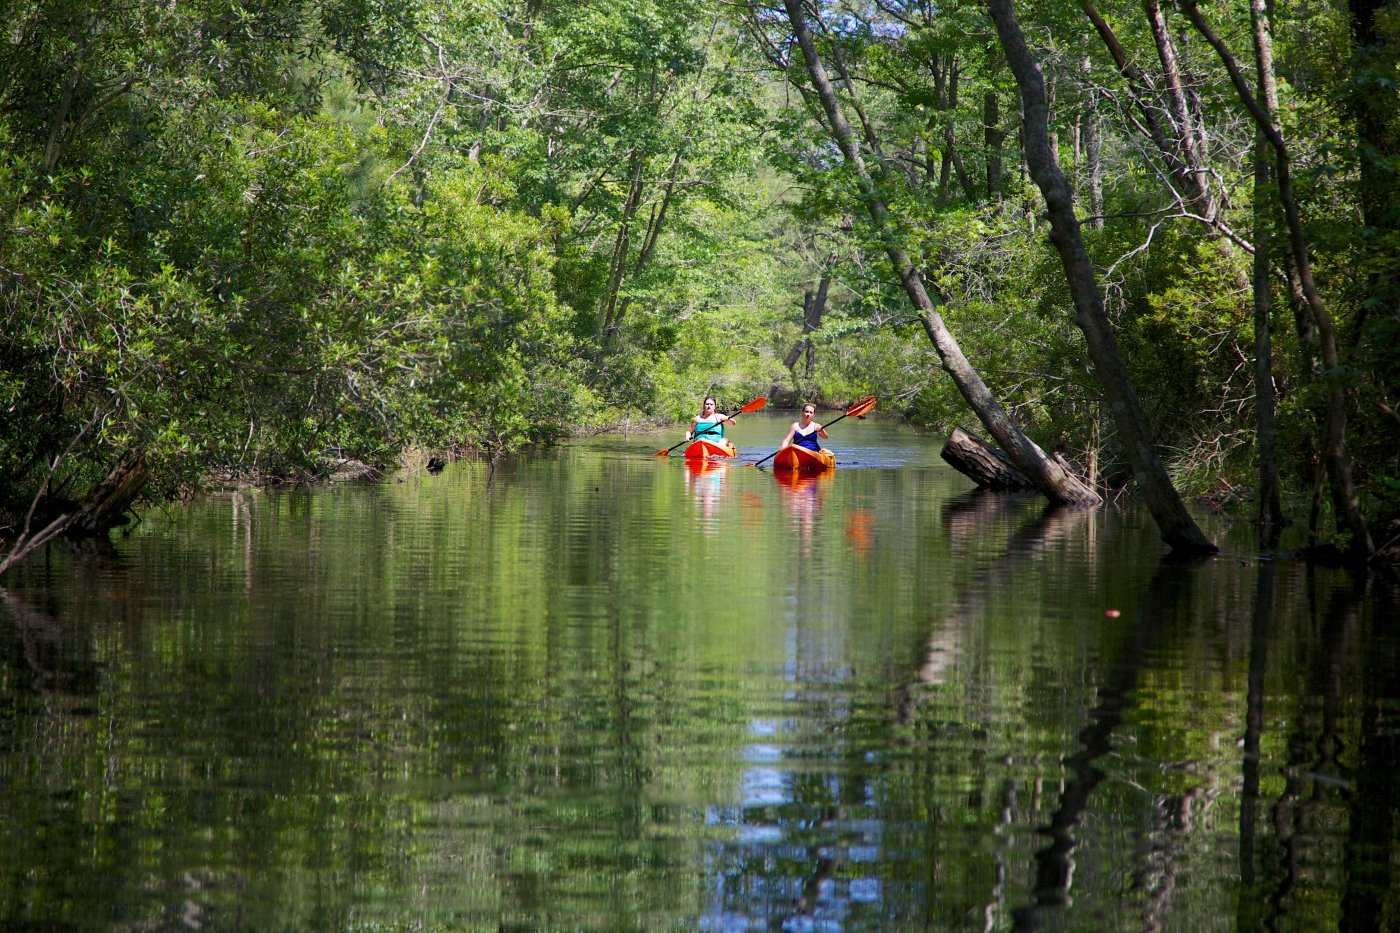 Kayaks and canoes are available to rent. Explore the area!